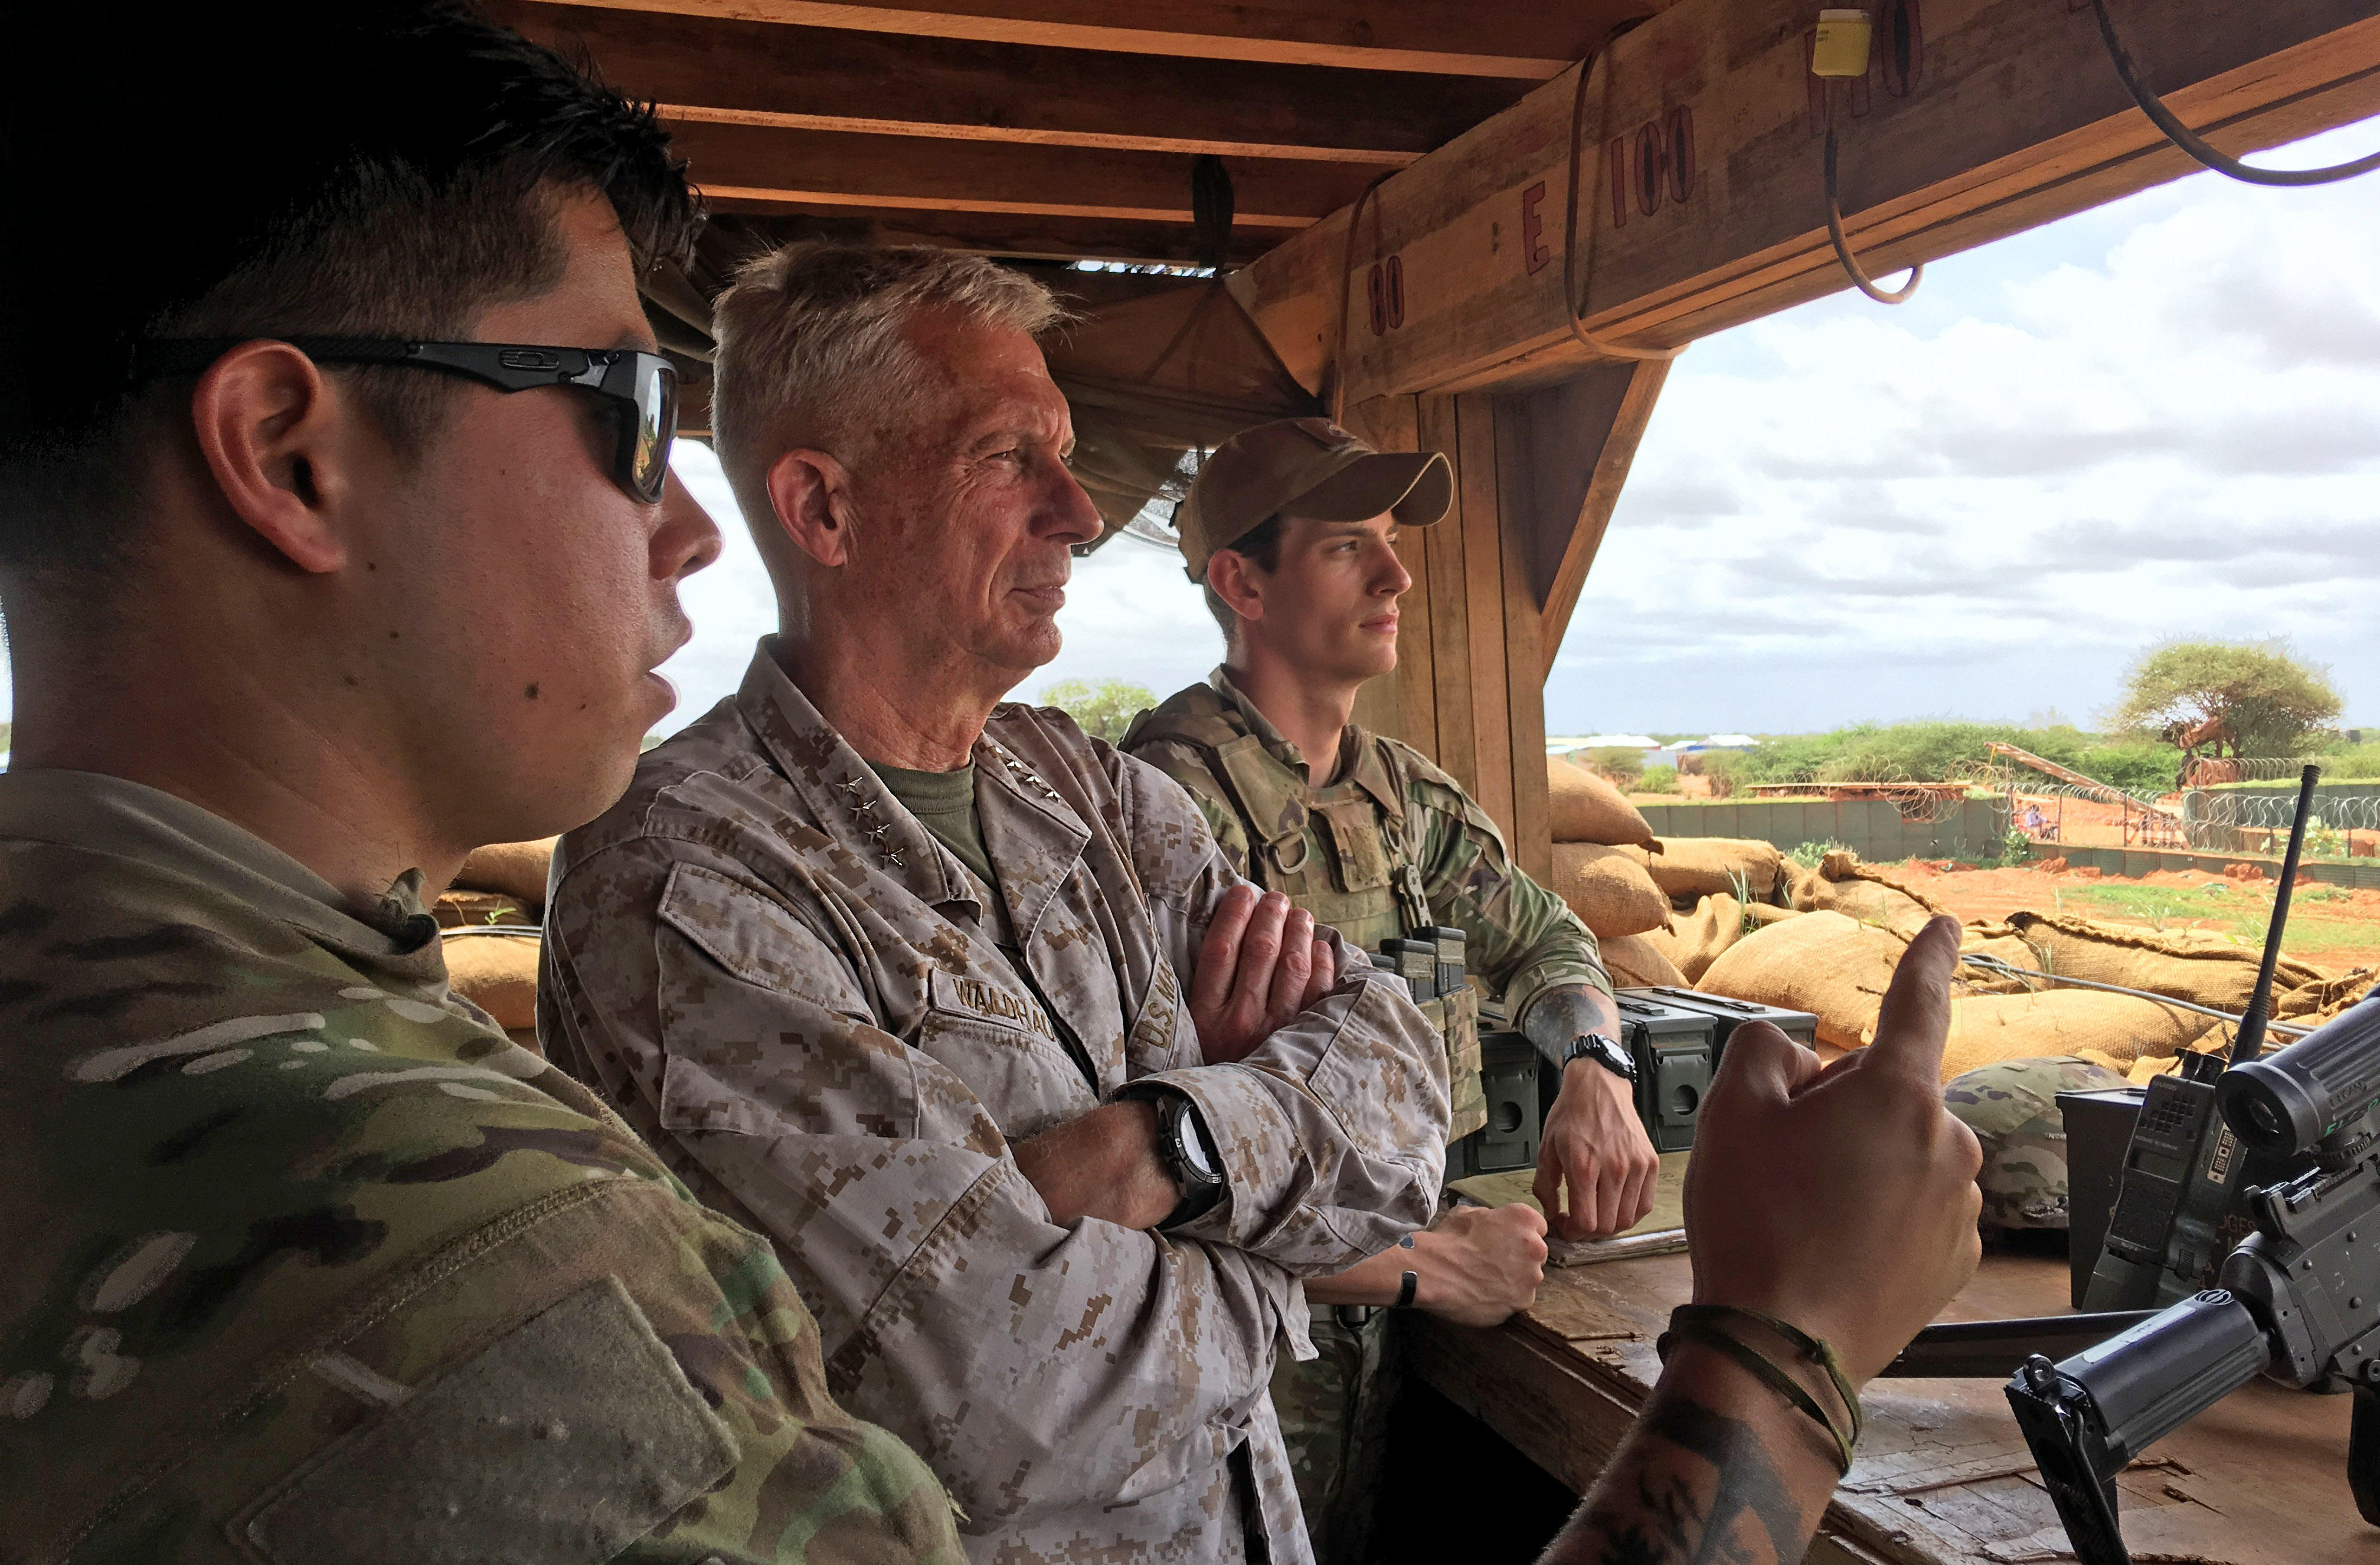 U.S. Marine Corps Gen. Thomas Waldhauser, commander, U.S. Africa Command, visited U.S. Africa Command forces at a forward operating location in Somalia, June 11, 2019. U.S. Africa Command is involved in various advise, assist and training programs in Somalia. The desired future state in East Africa is one in which terrorist organizations are not able to destabilize Somalia or its neighbors, nor threaten U.S. and international allies interests' in the region.